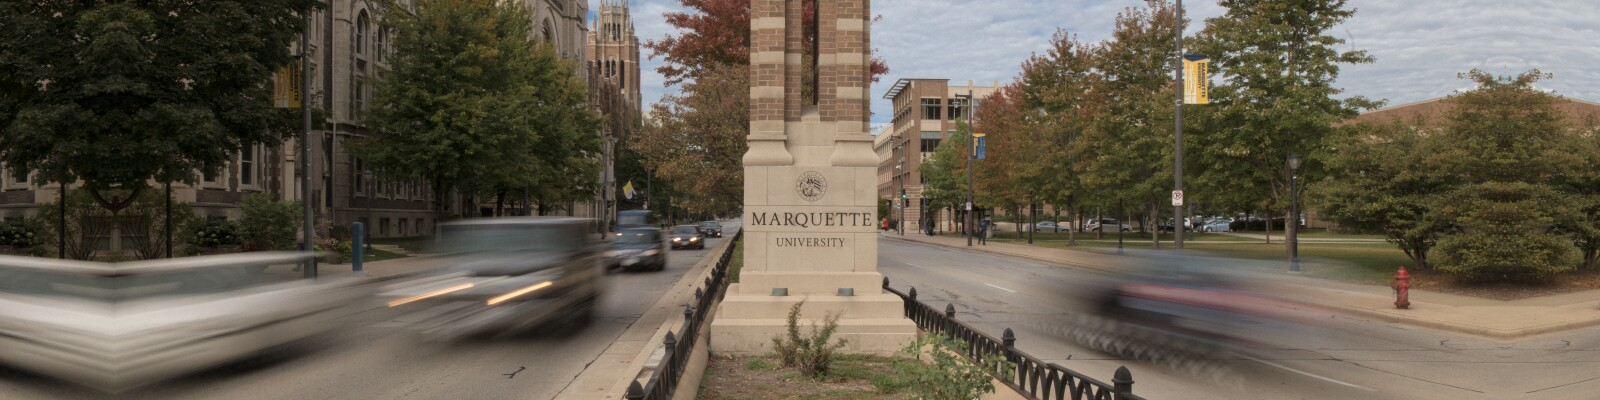 Marquette University tower on campus